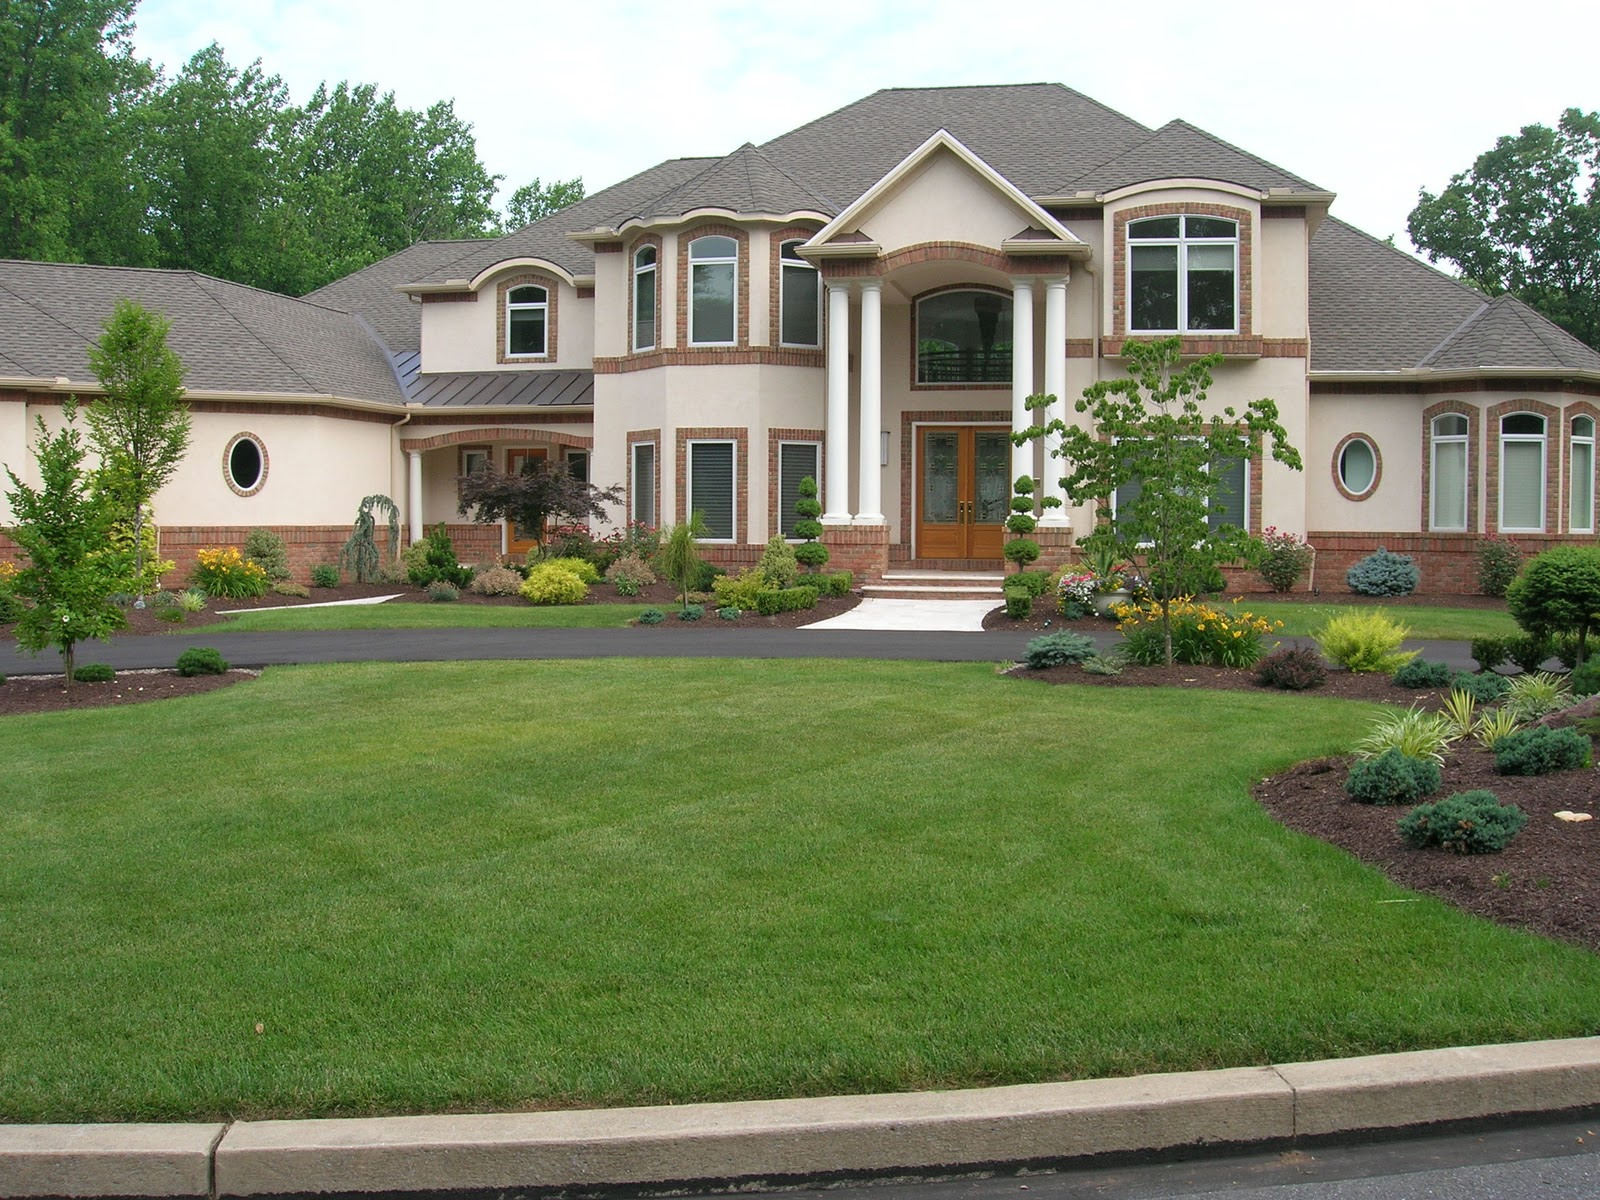 Very Best Home Front Yard Landscaping Ideas 1600 x 1200 · 551 kB · jpeg